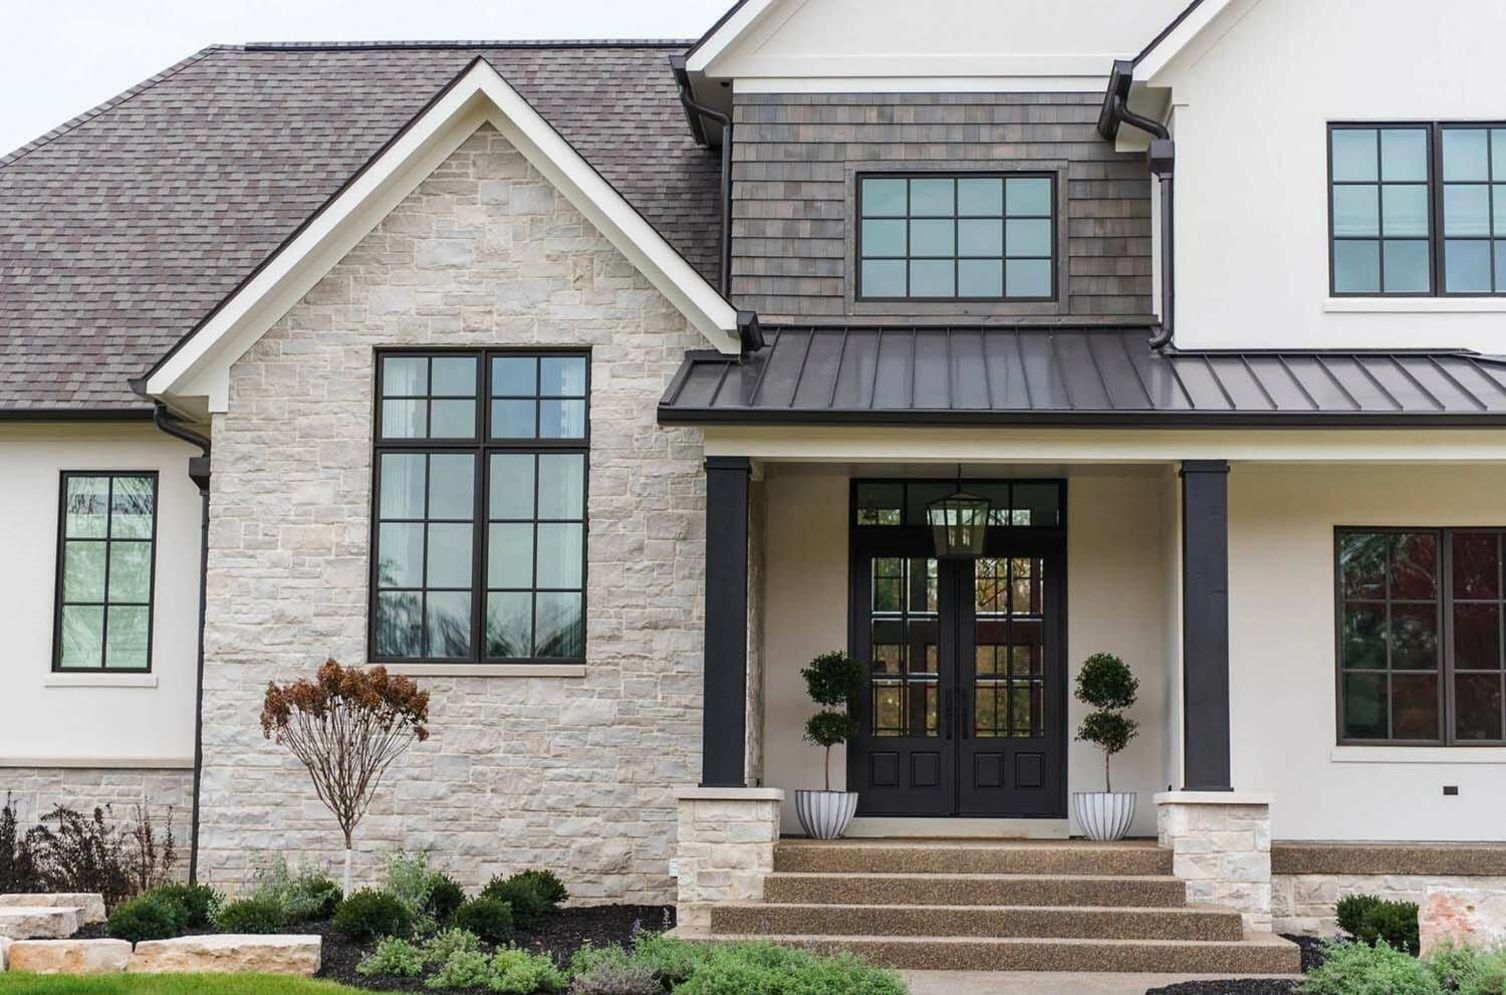 Modern house with new farmhouse exterior design pulling out country charm and warm welcoming display Image 45